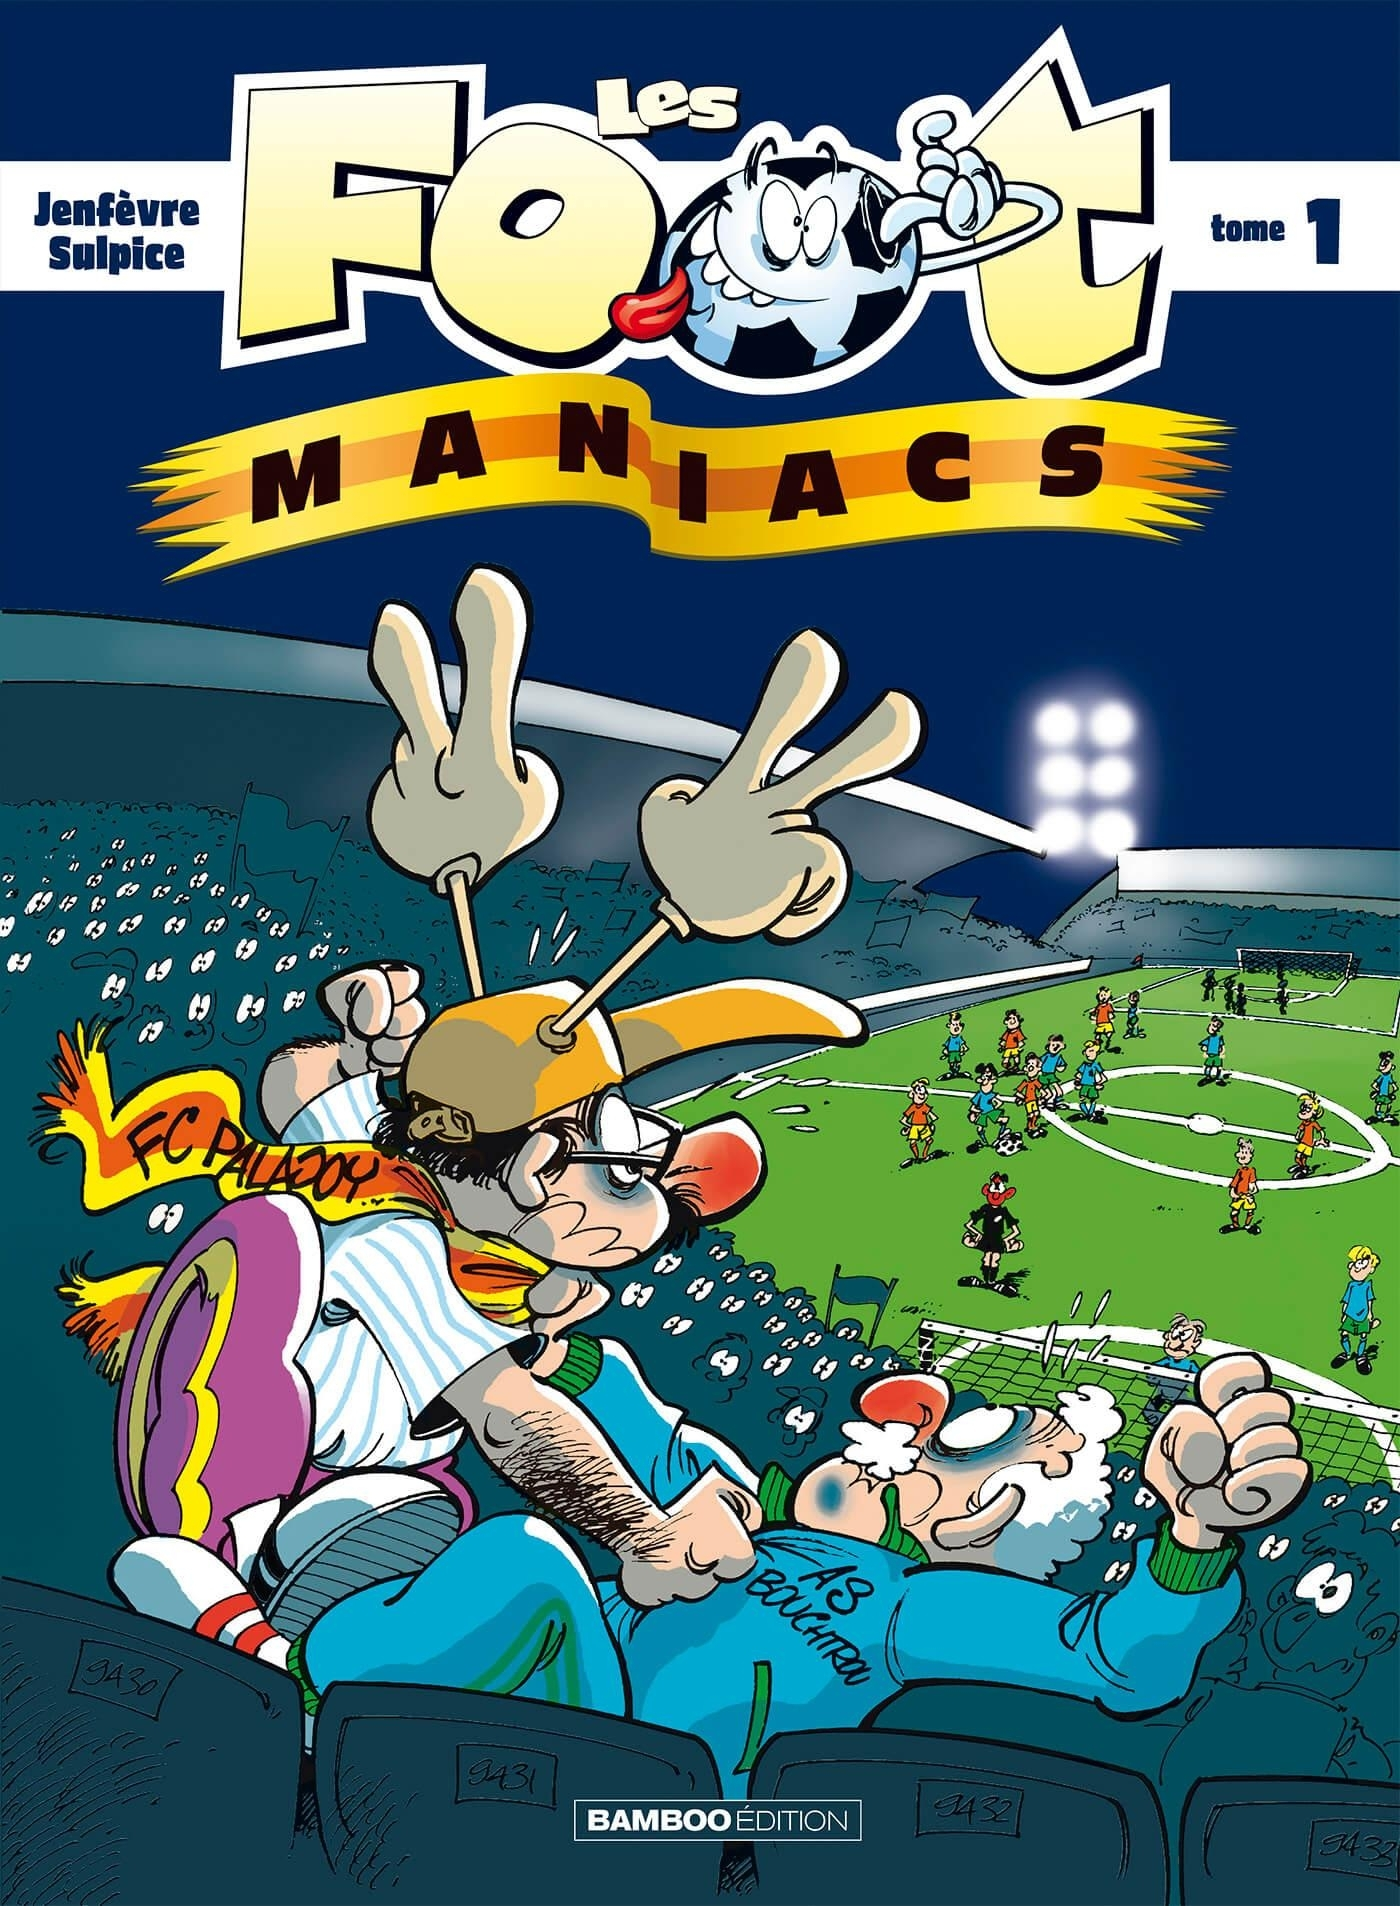 LES FOOT MANIACS - TOME 1